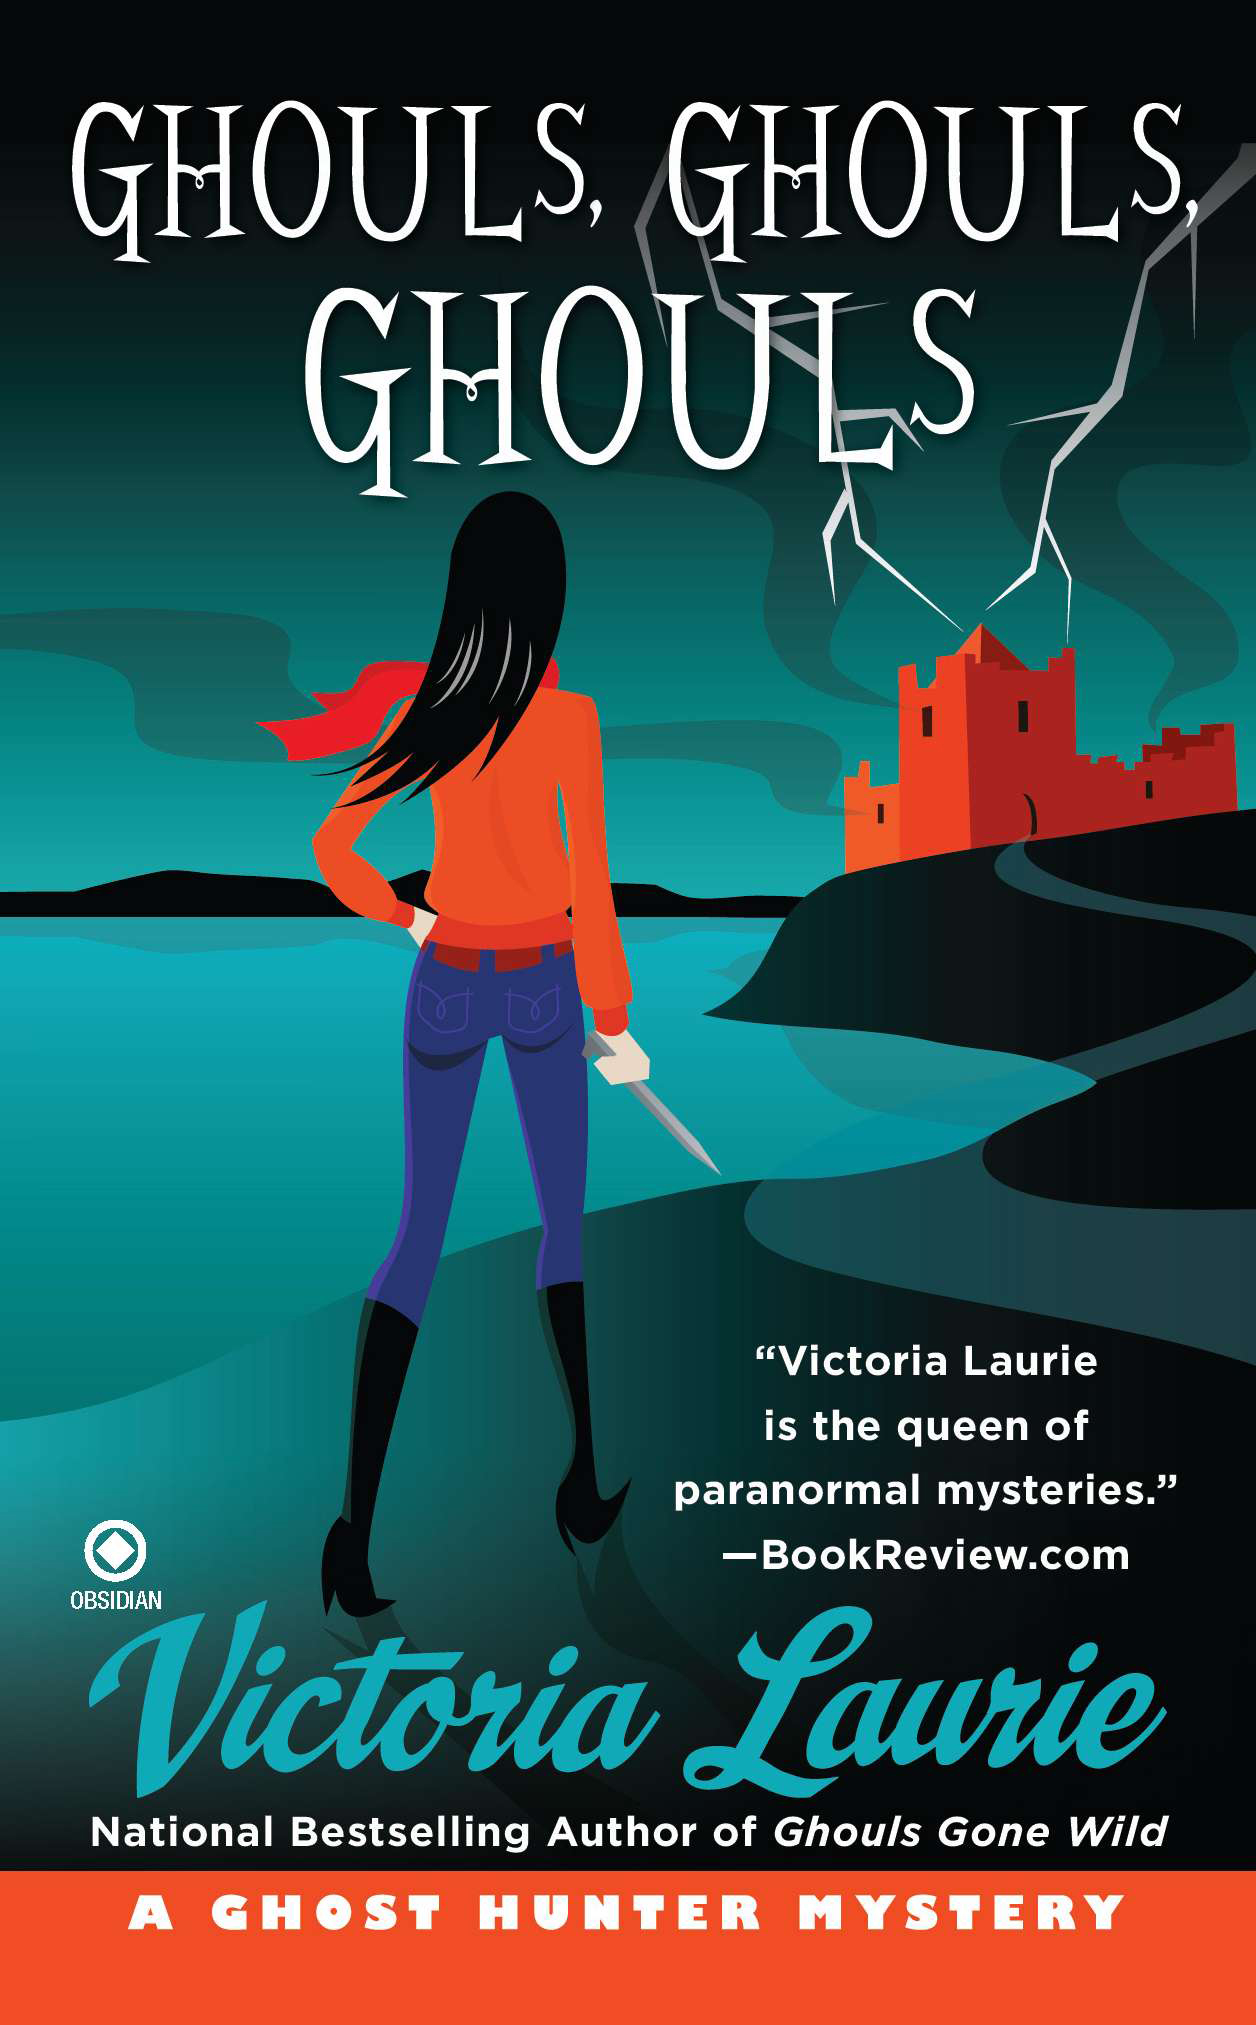 Ghouls, Ghouls, Ghouls: A Ghost Hunter Mystery By: Victoria Laurie